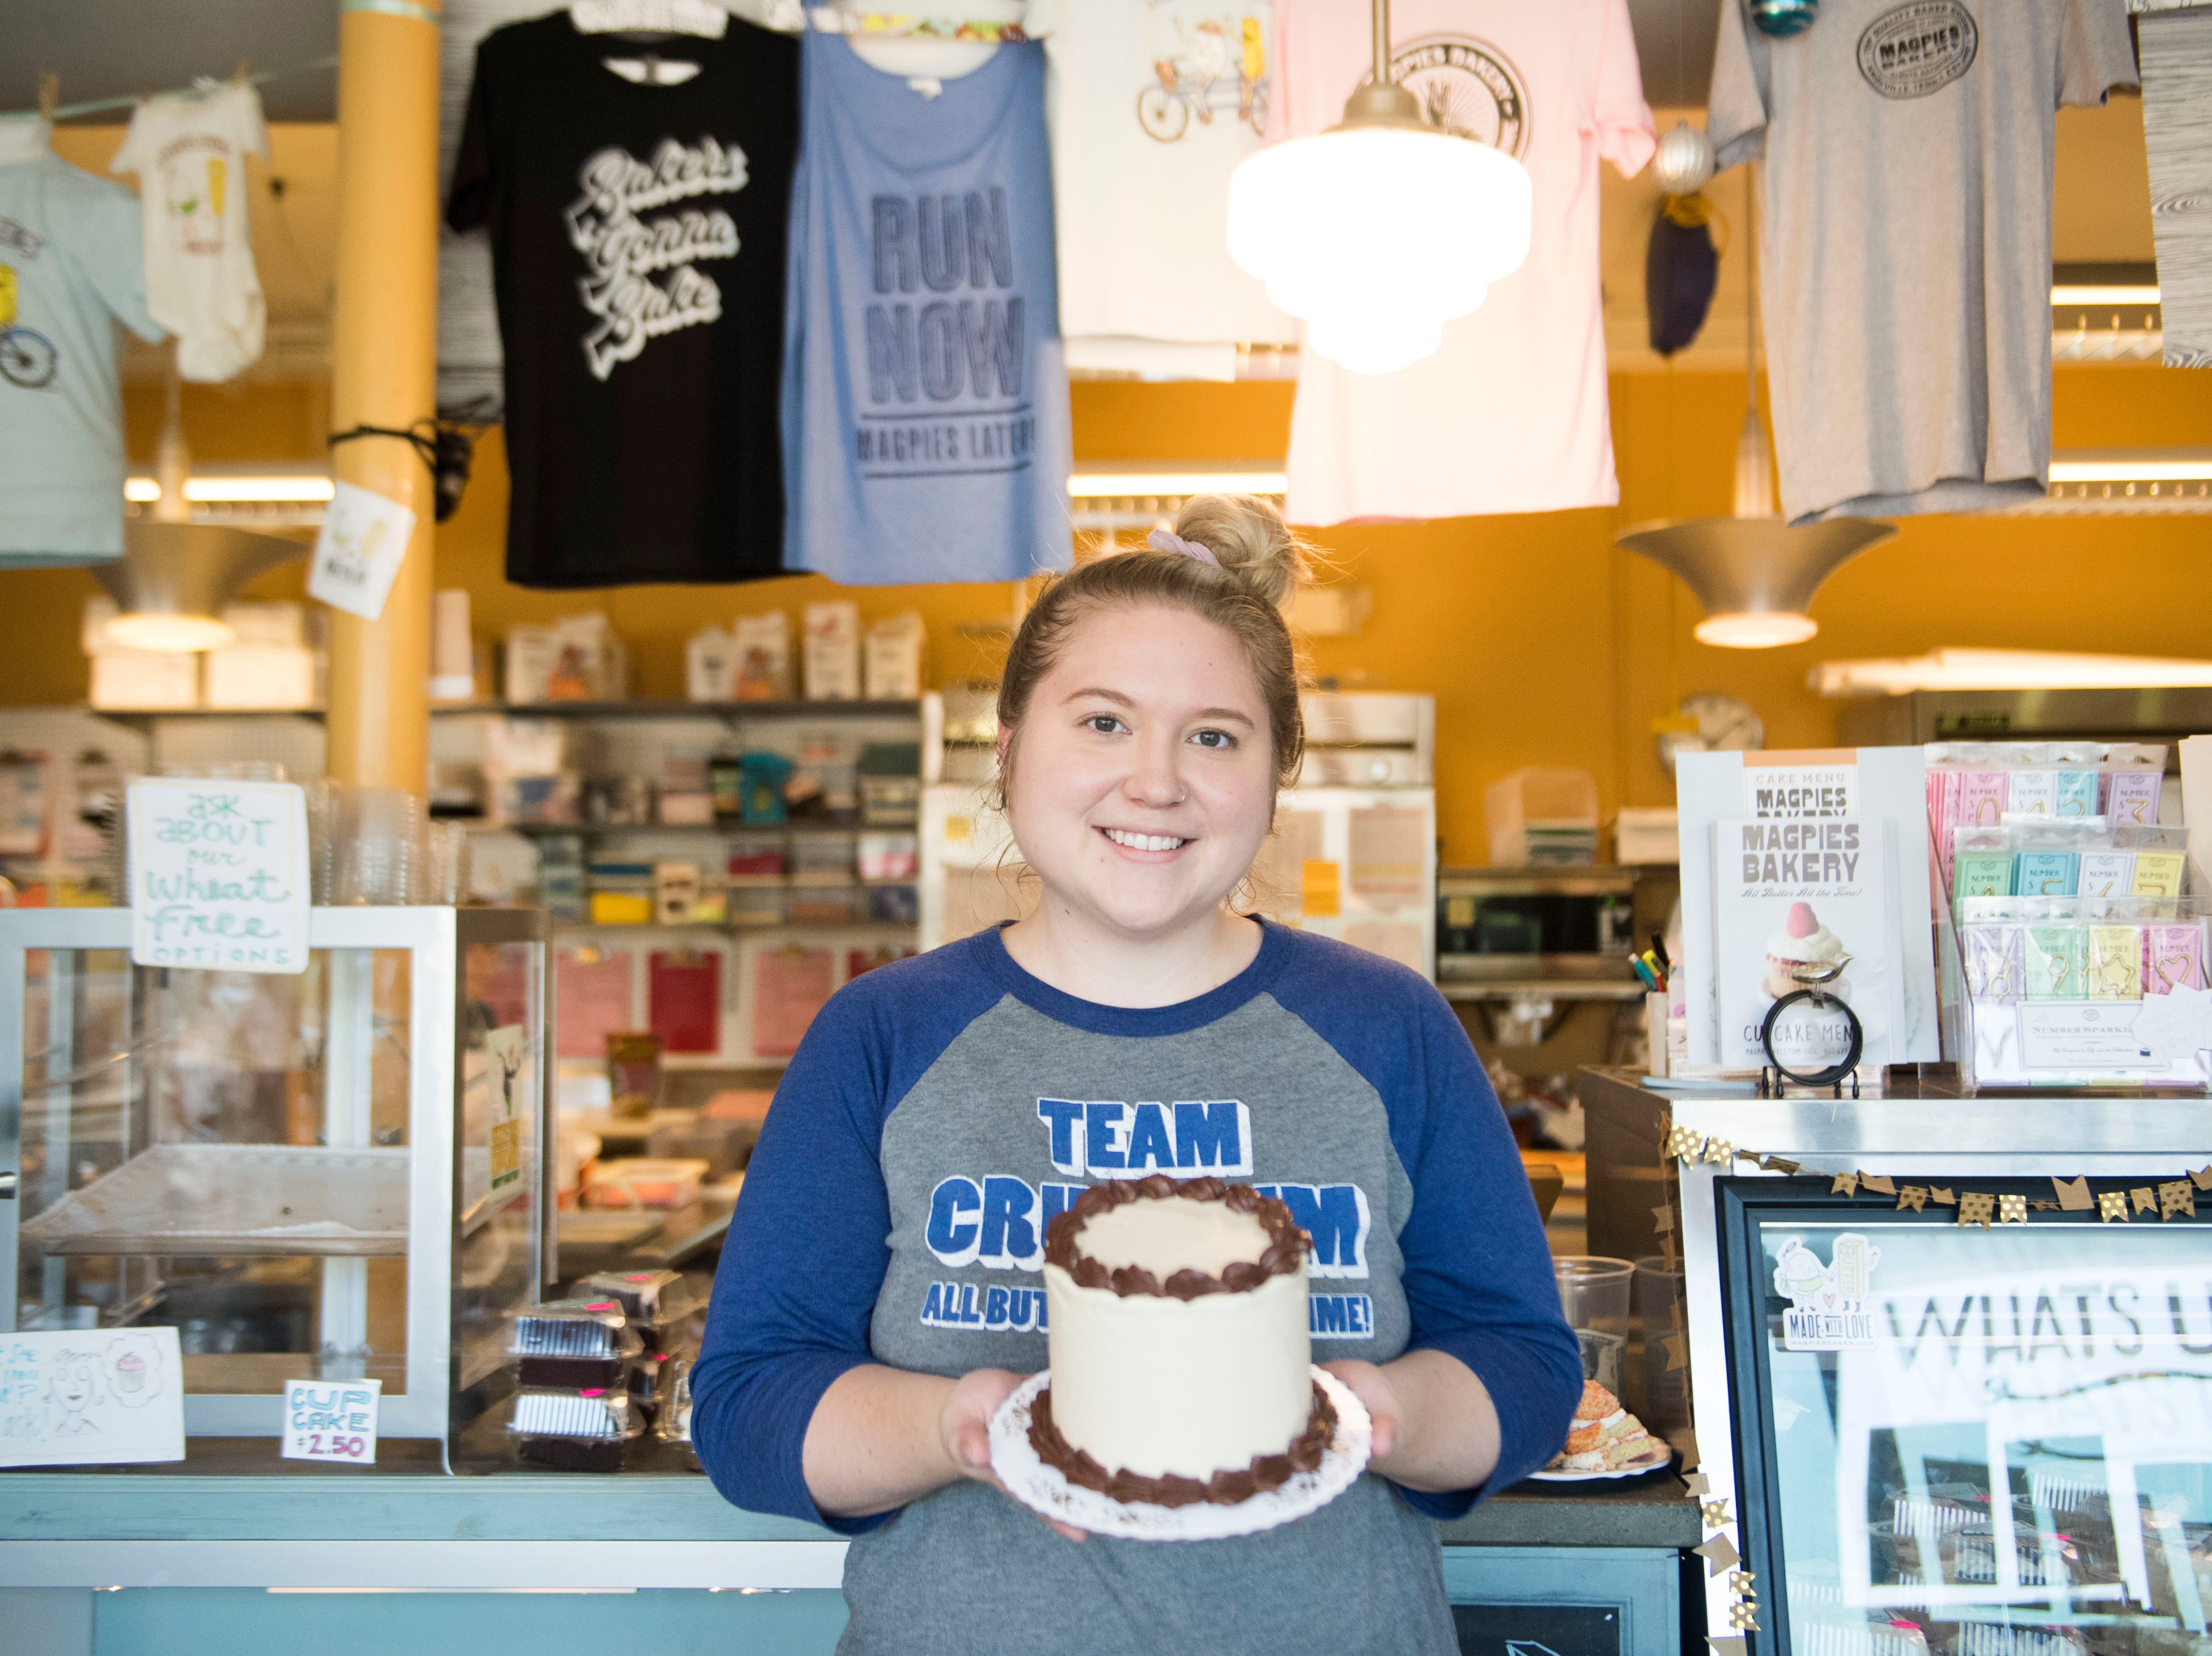 Elizabeth Smith, new owner of Magpies Bakery, located on North Central Street, stands with a cake in the shop's lobby Tuesday, Aug. 28, 2018. Smith bought the bakery from her aunt, Peg Hambright, in January.